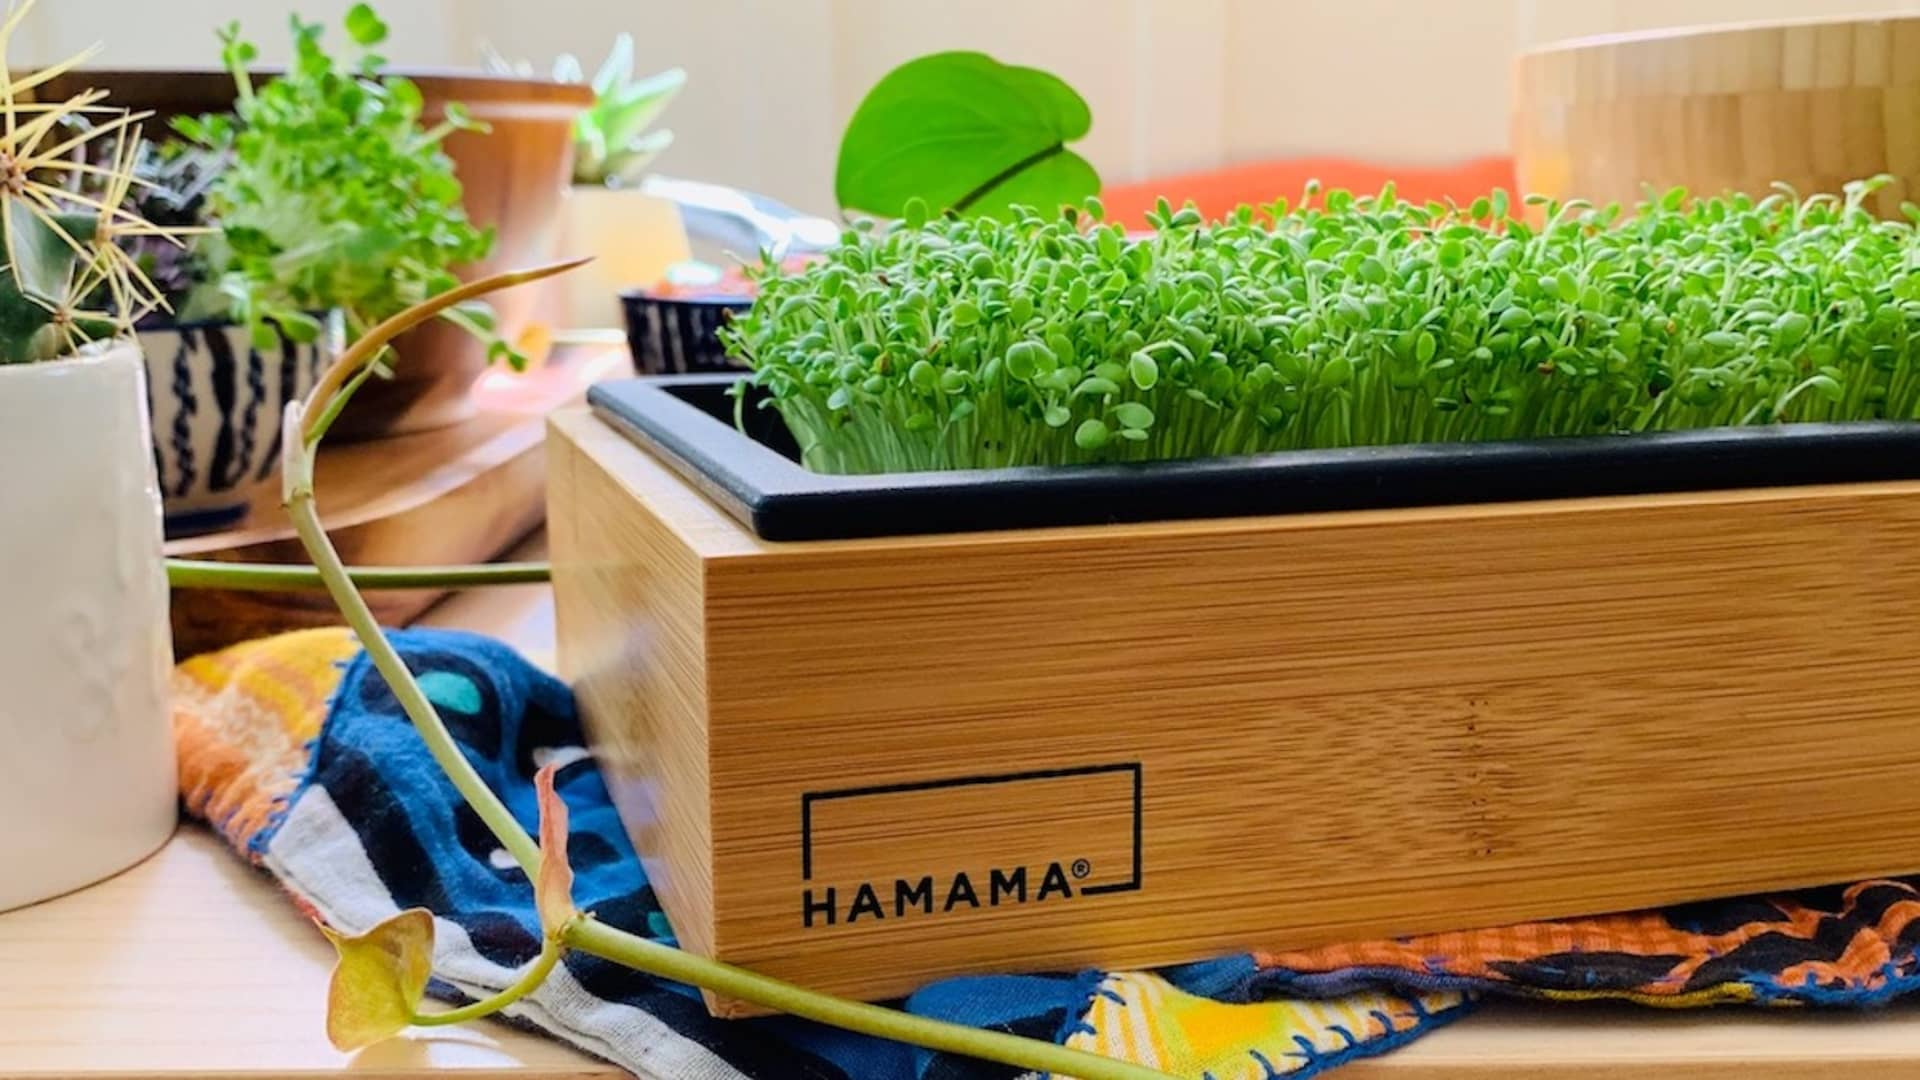 Microgreen kit producer Hamama is helping people grow green produce at home.